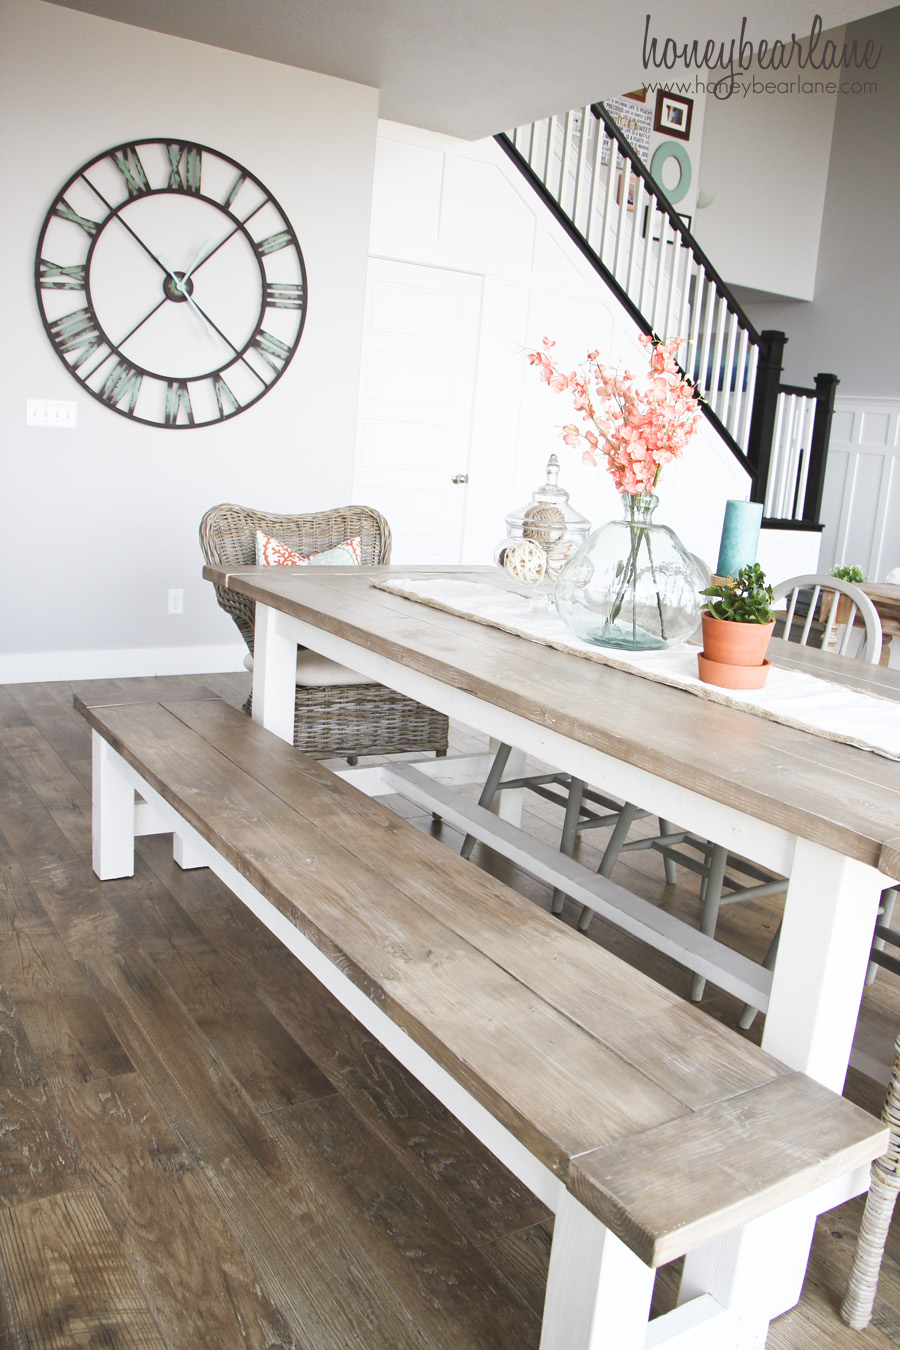 3 DIY Dining Tables - Bob Vila